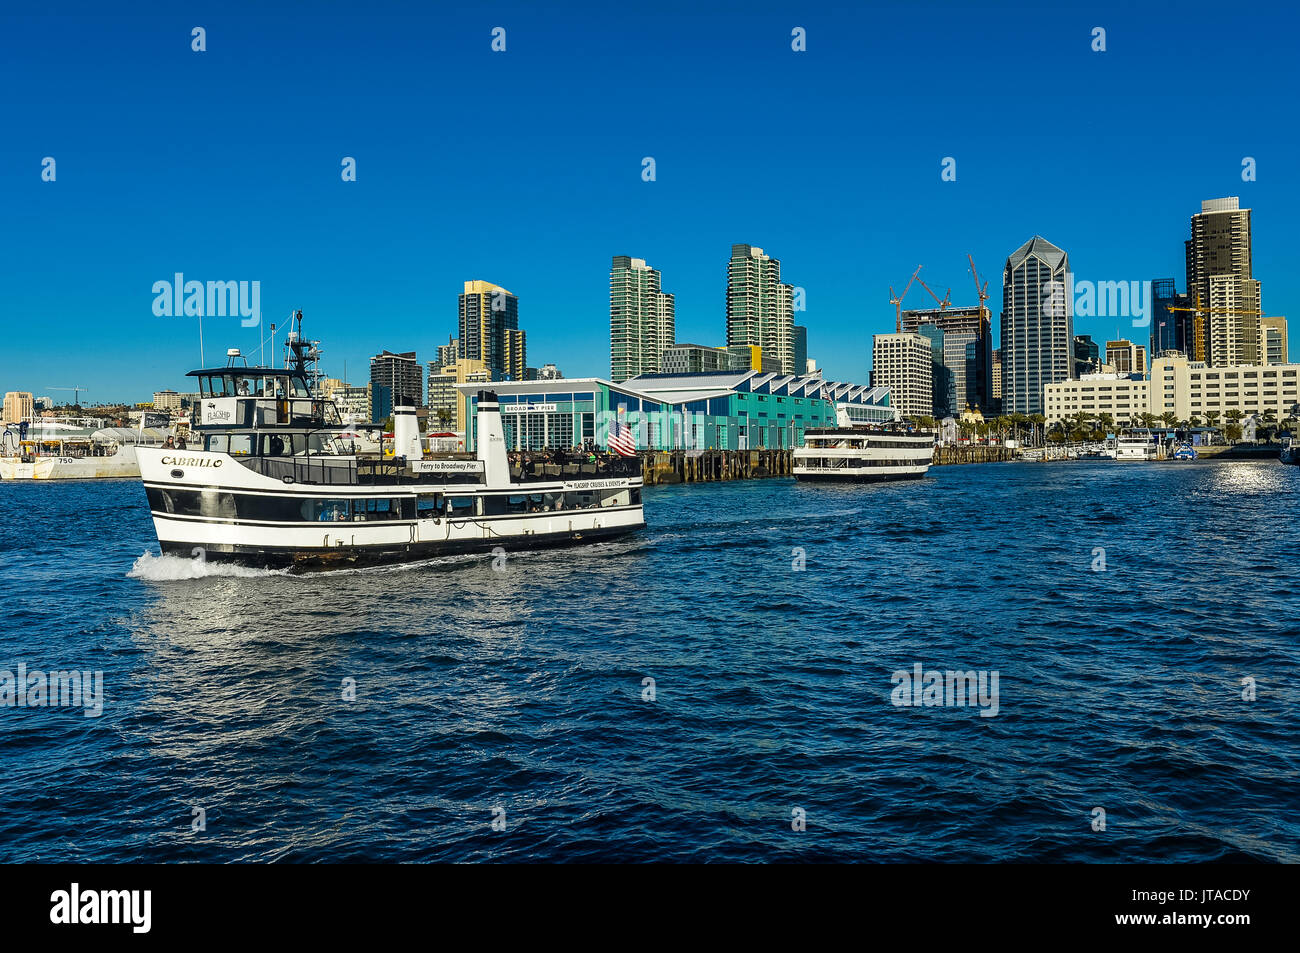 Little tourist cruise ship with the skyline in the background, Harbour of San Diego, California, USA, North America - Stock Image